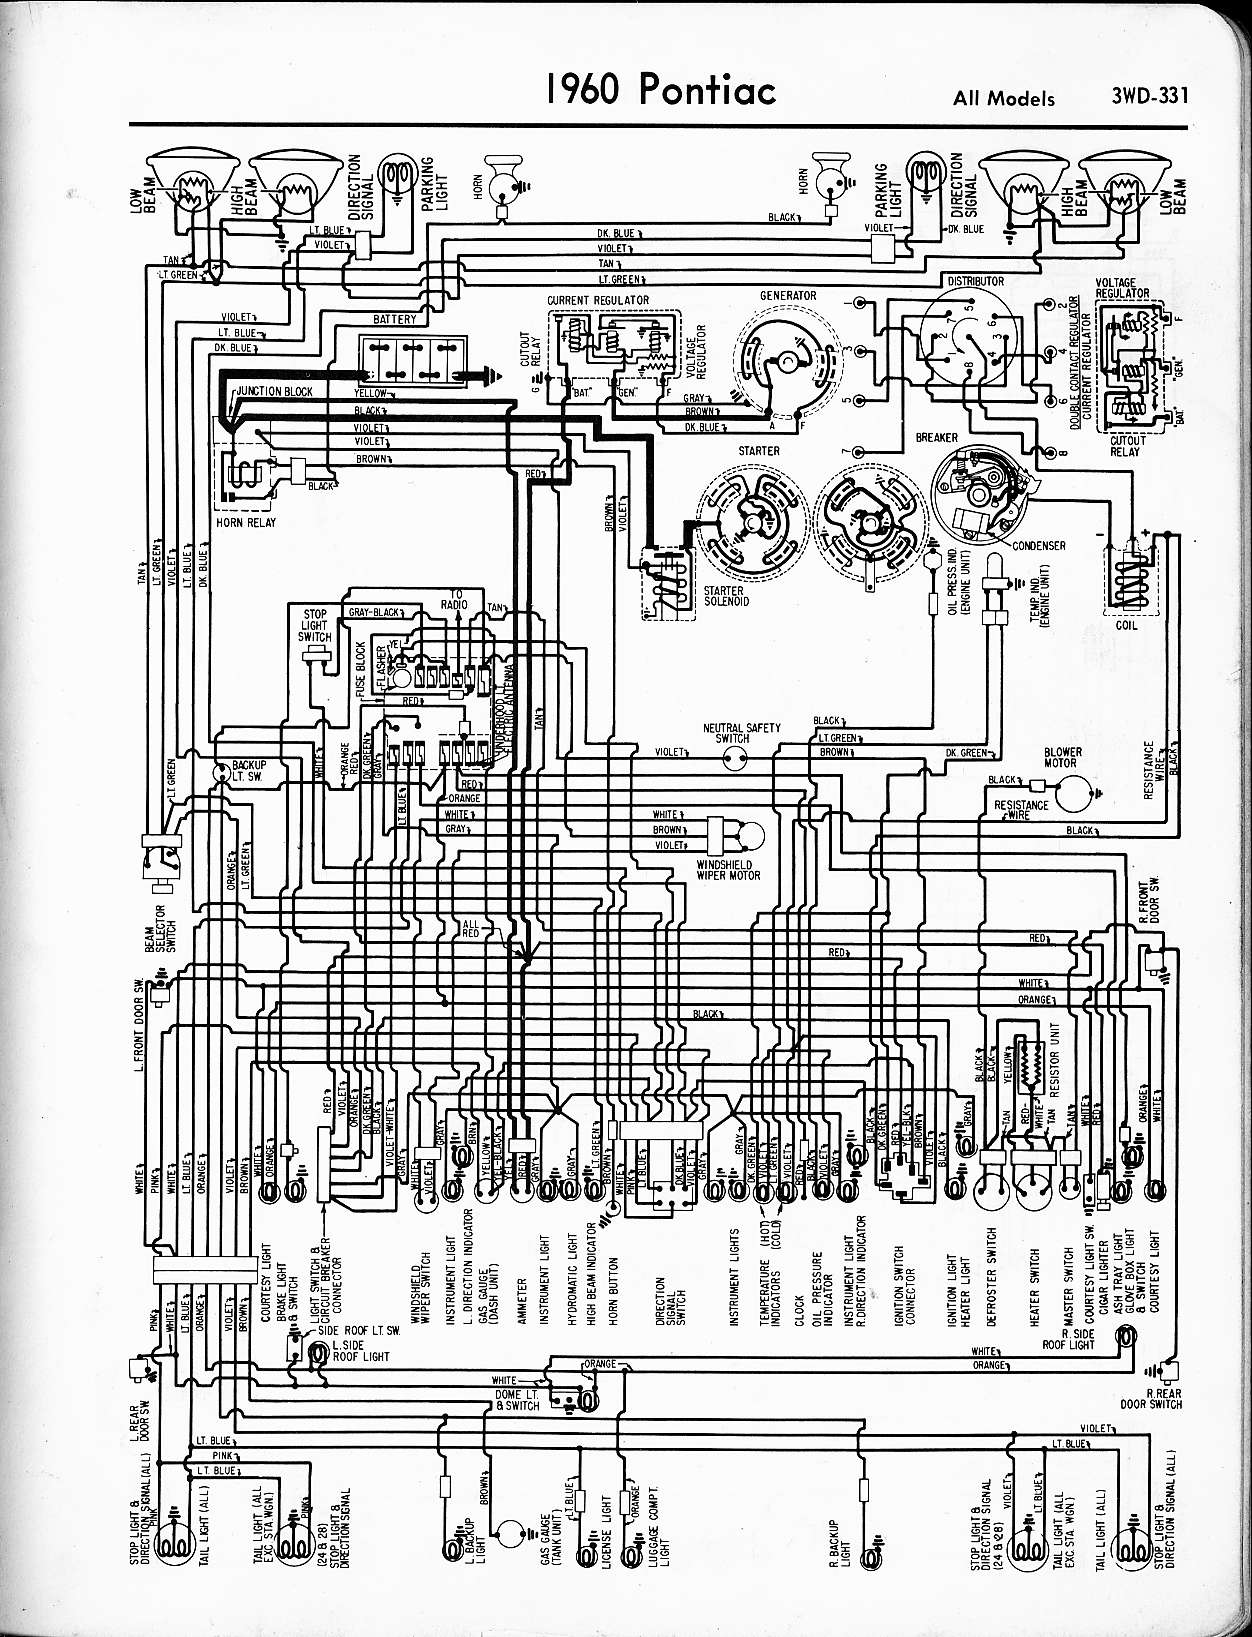 Pontiac Wiring Diagram Automotive 2003 Bonneville Radio Wallace Racing Diagrams Rh Wallaceracing Com Vibe G5